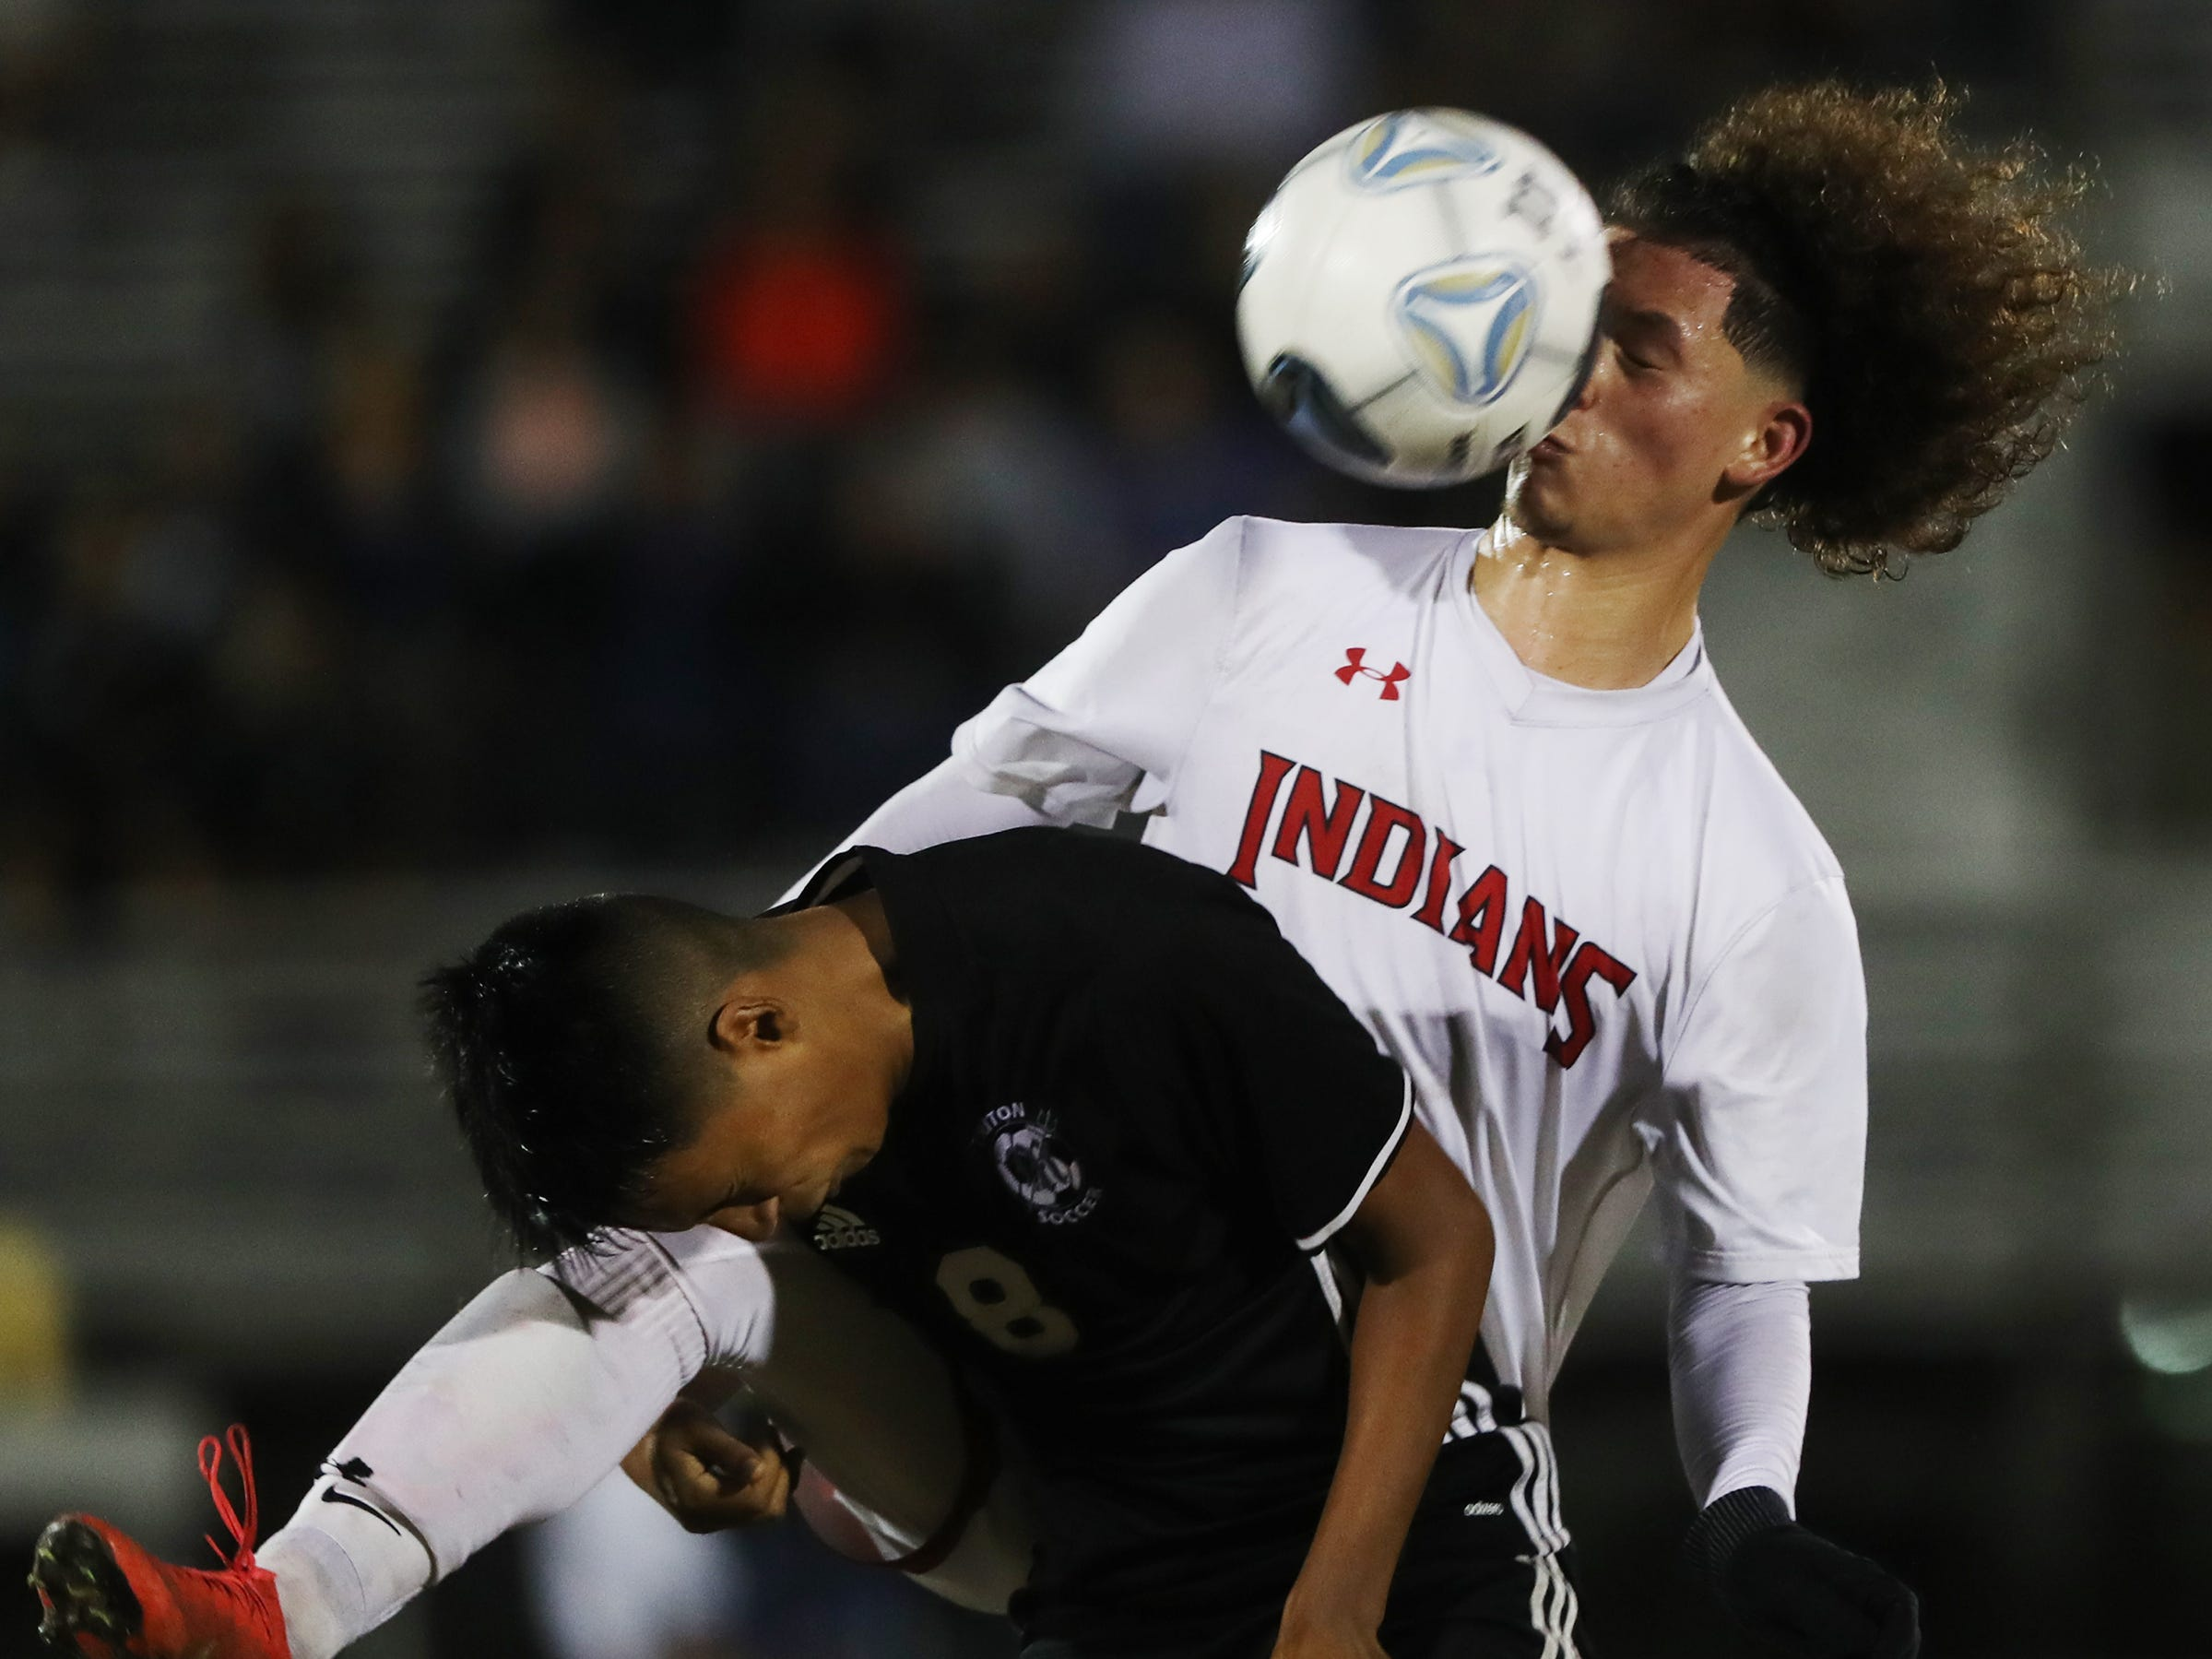 Mariner High School's Alex Franco, left, battles Immokalee's Guadalupe Guzman on Wednesday in the Class 3A regional quarterfinal. Mariner Immokalee Cape 2-0.